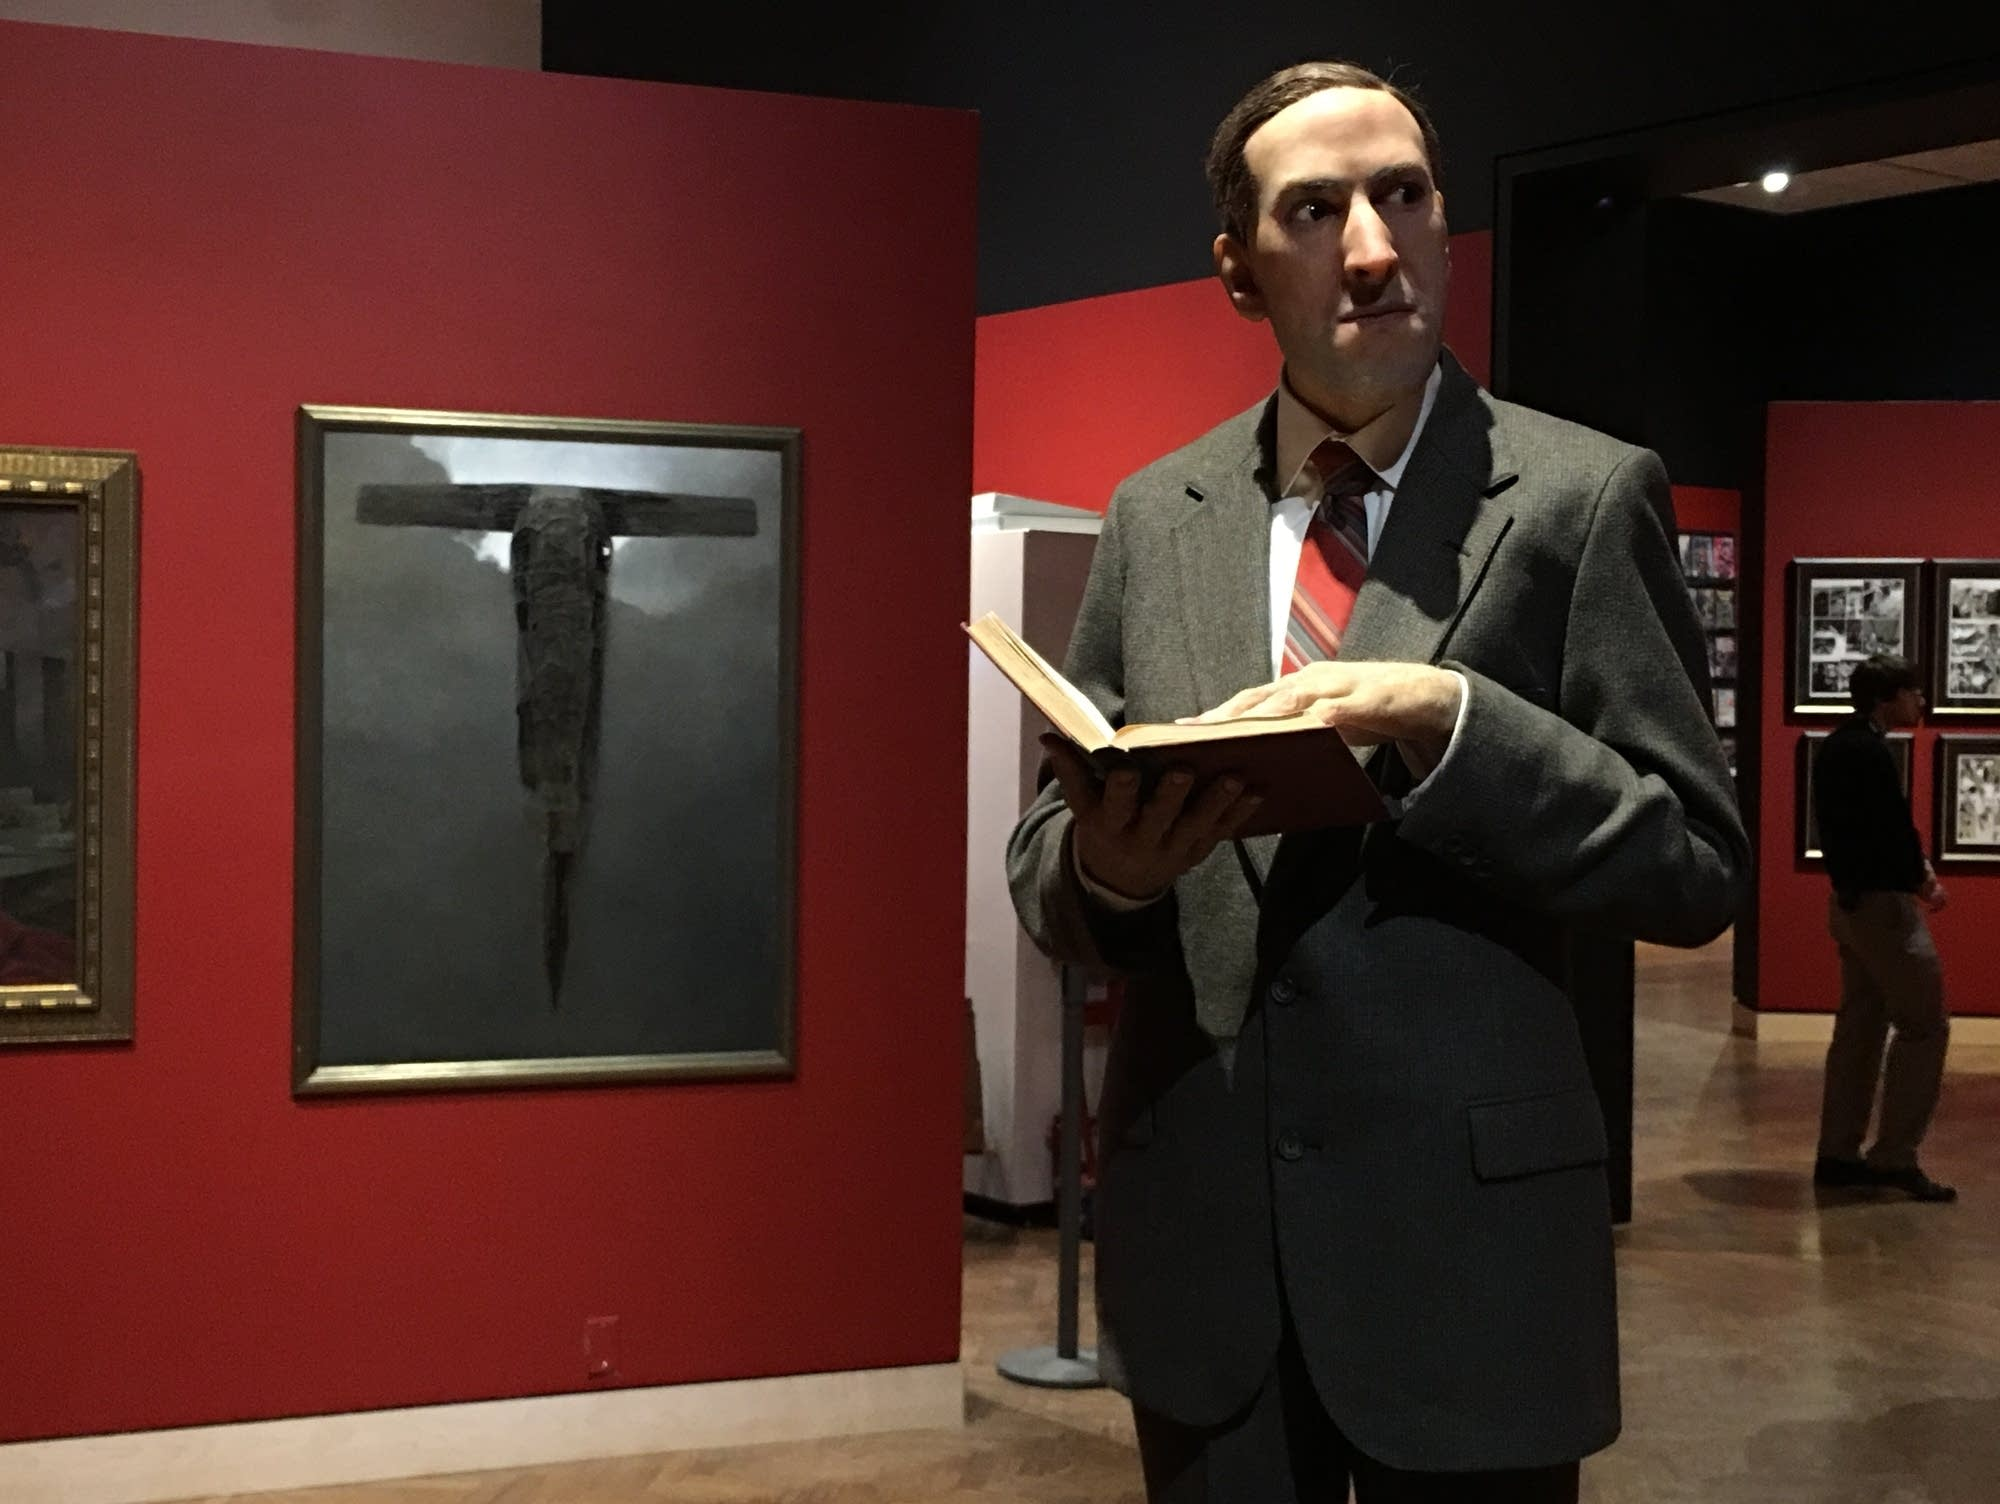 A model of the author H.P. Lovecraft